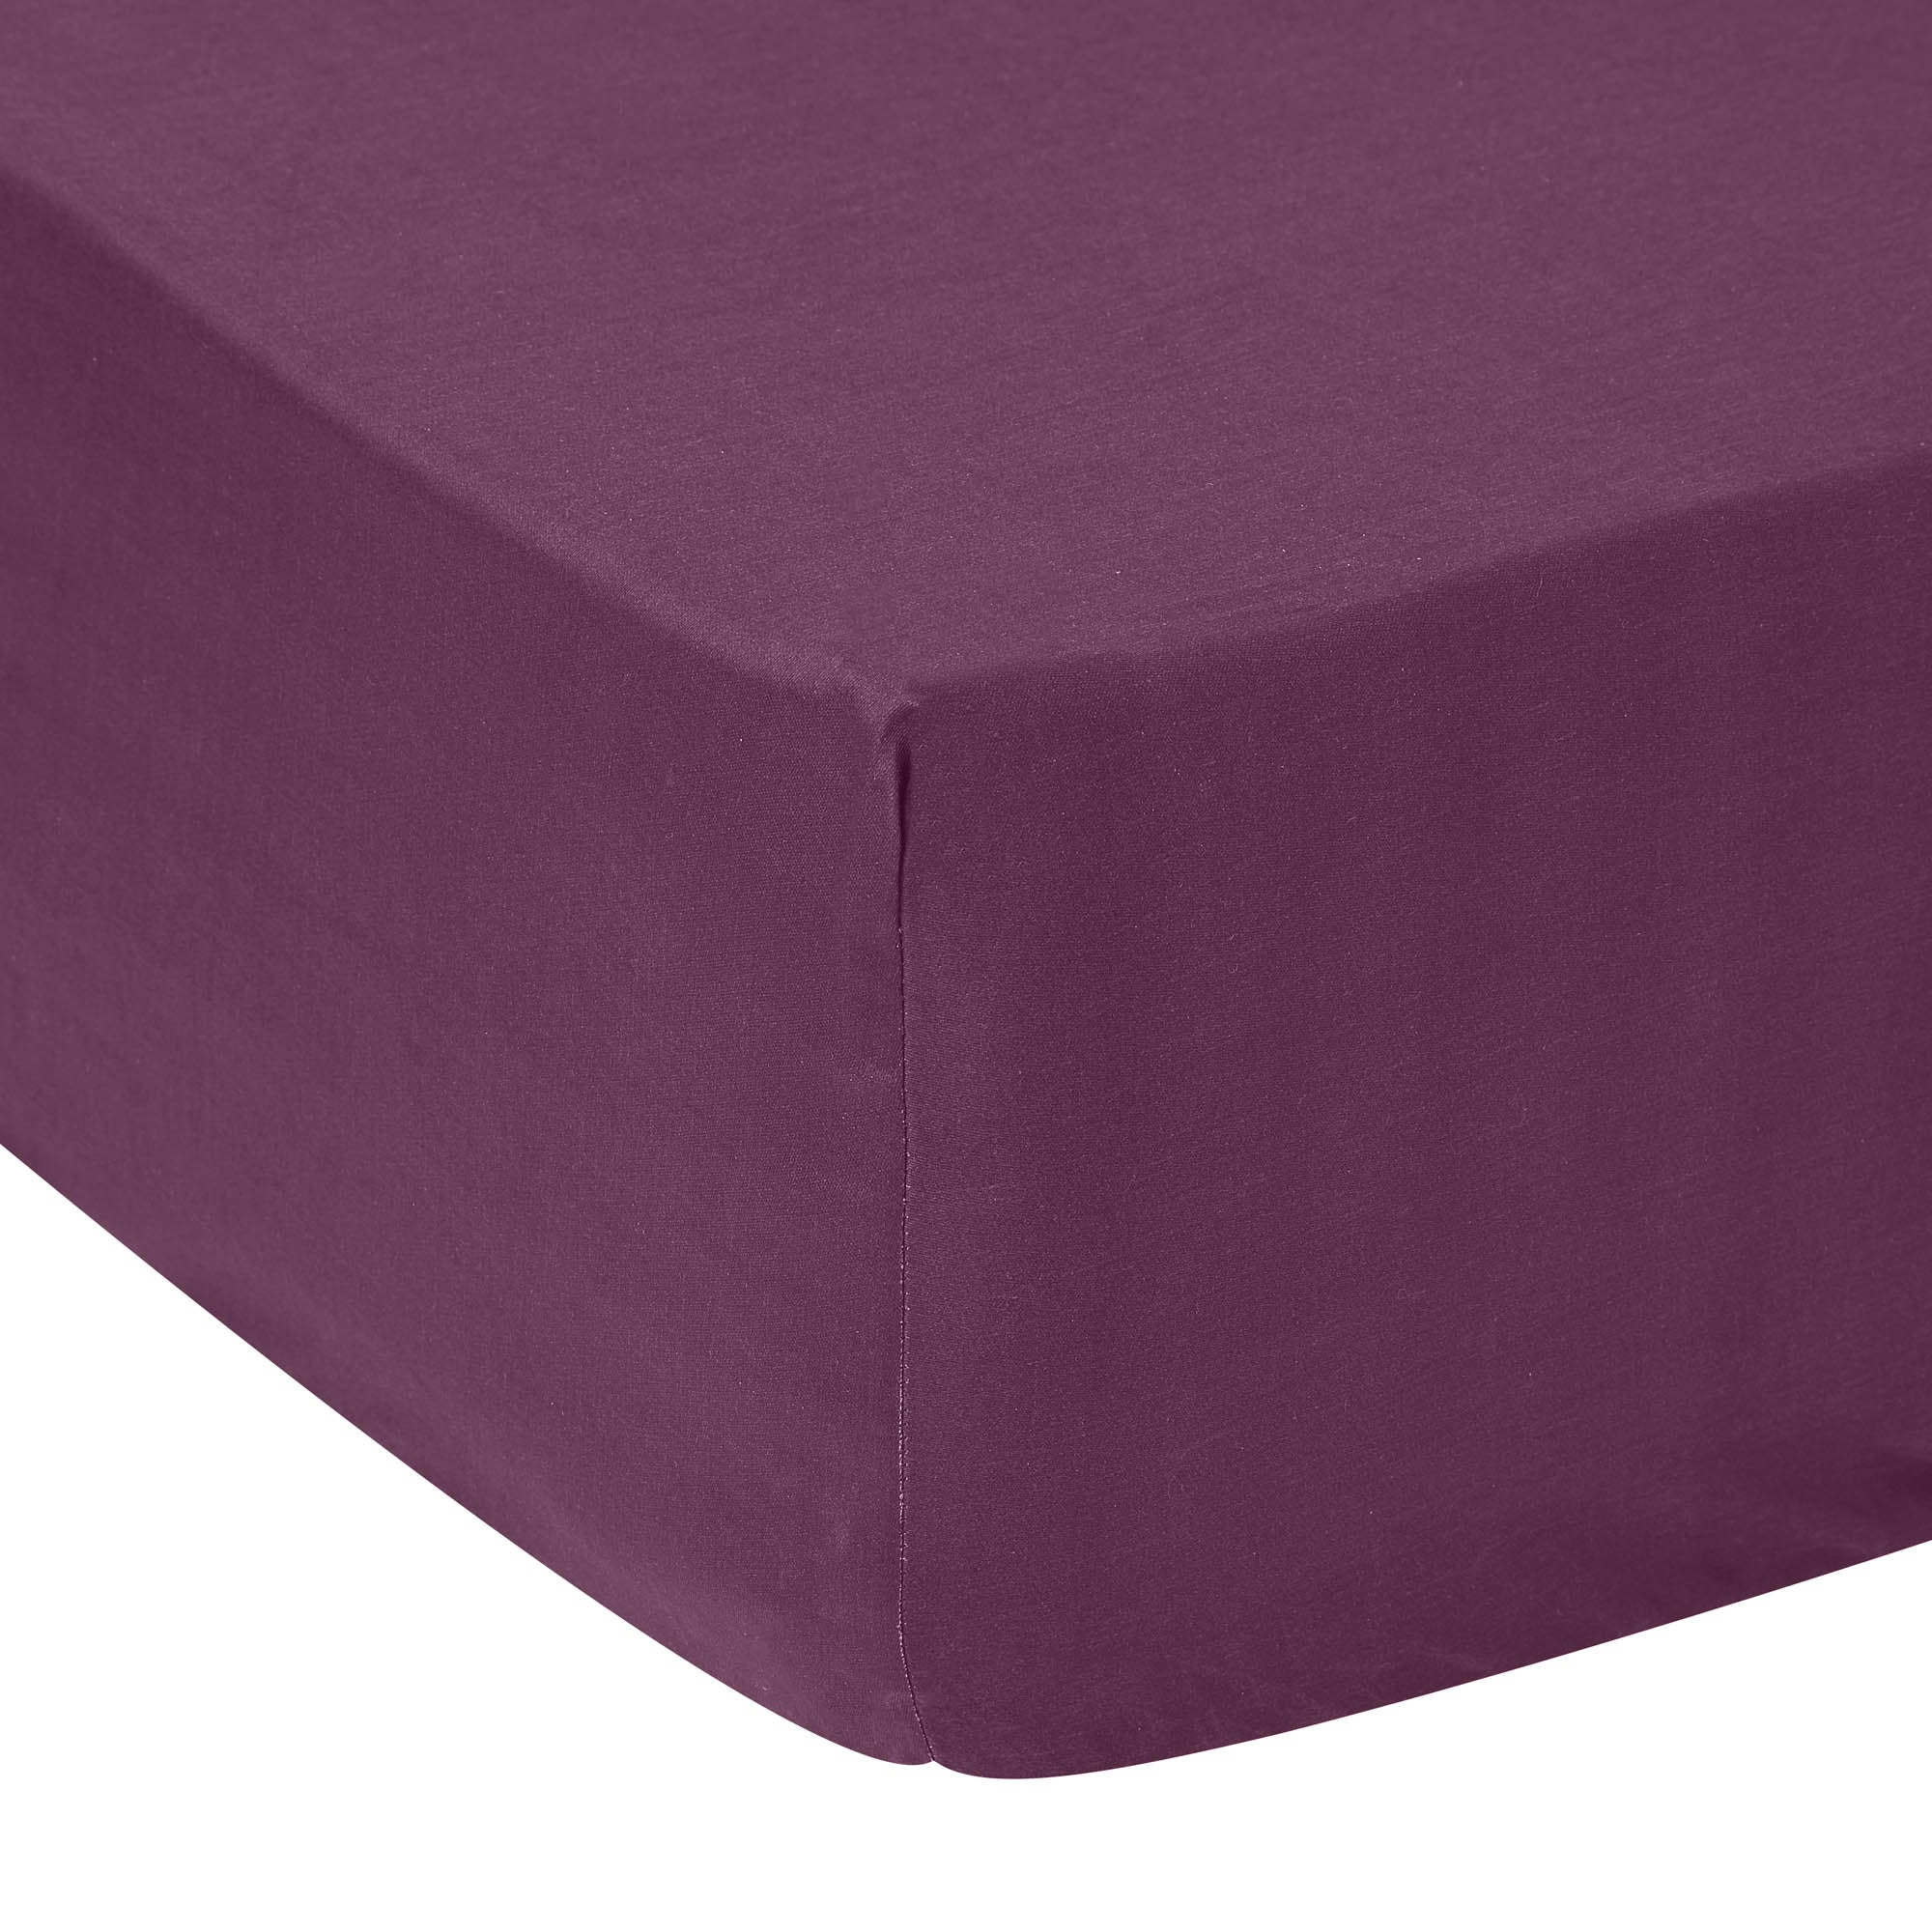 Image of 5A Fifth Avenue 300 Thread Count Modal Plum Fitted Sheet Port Plum